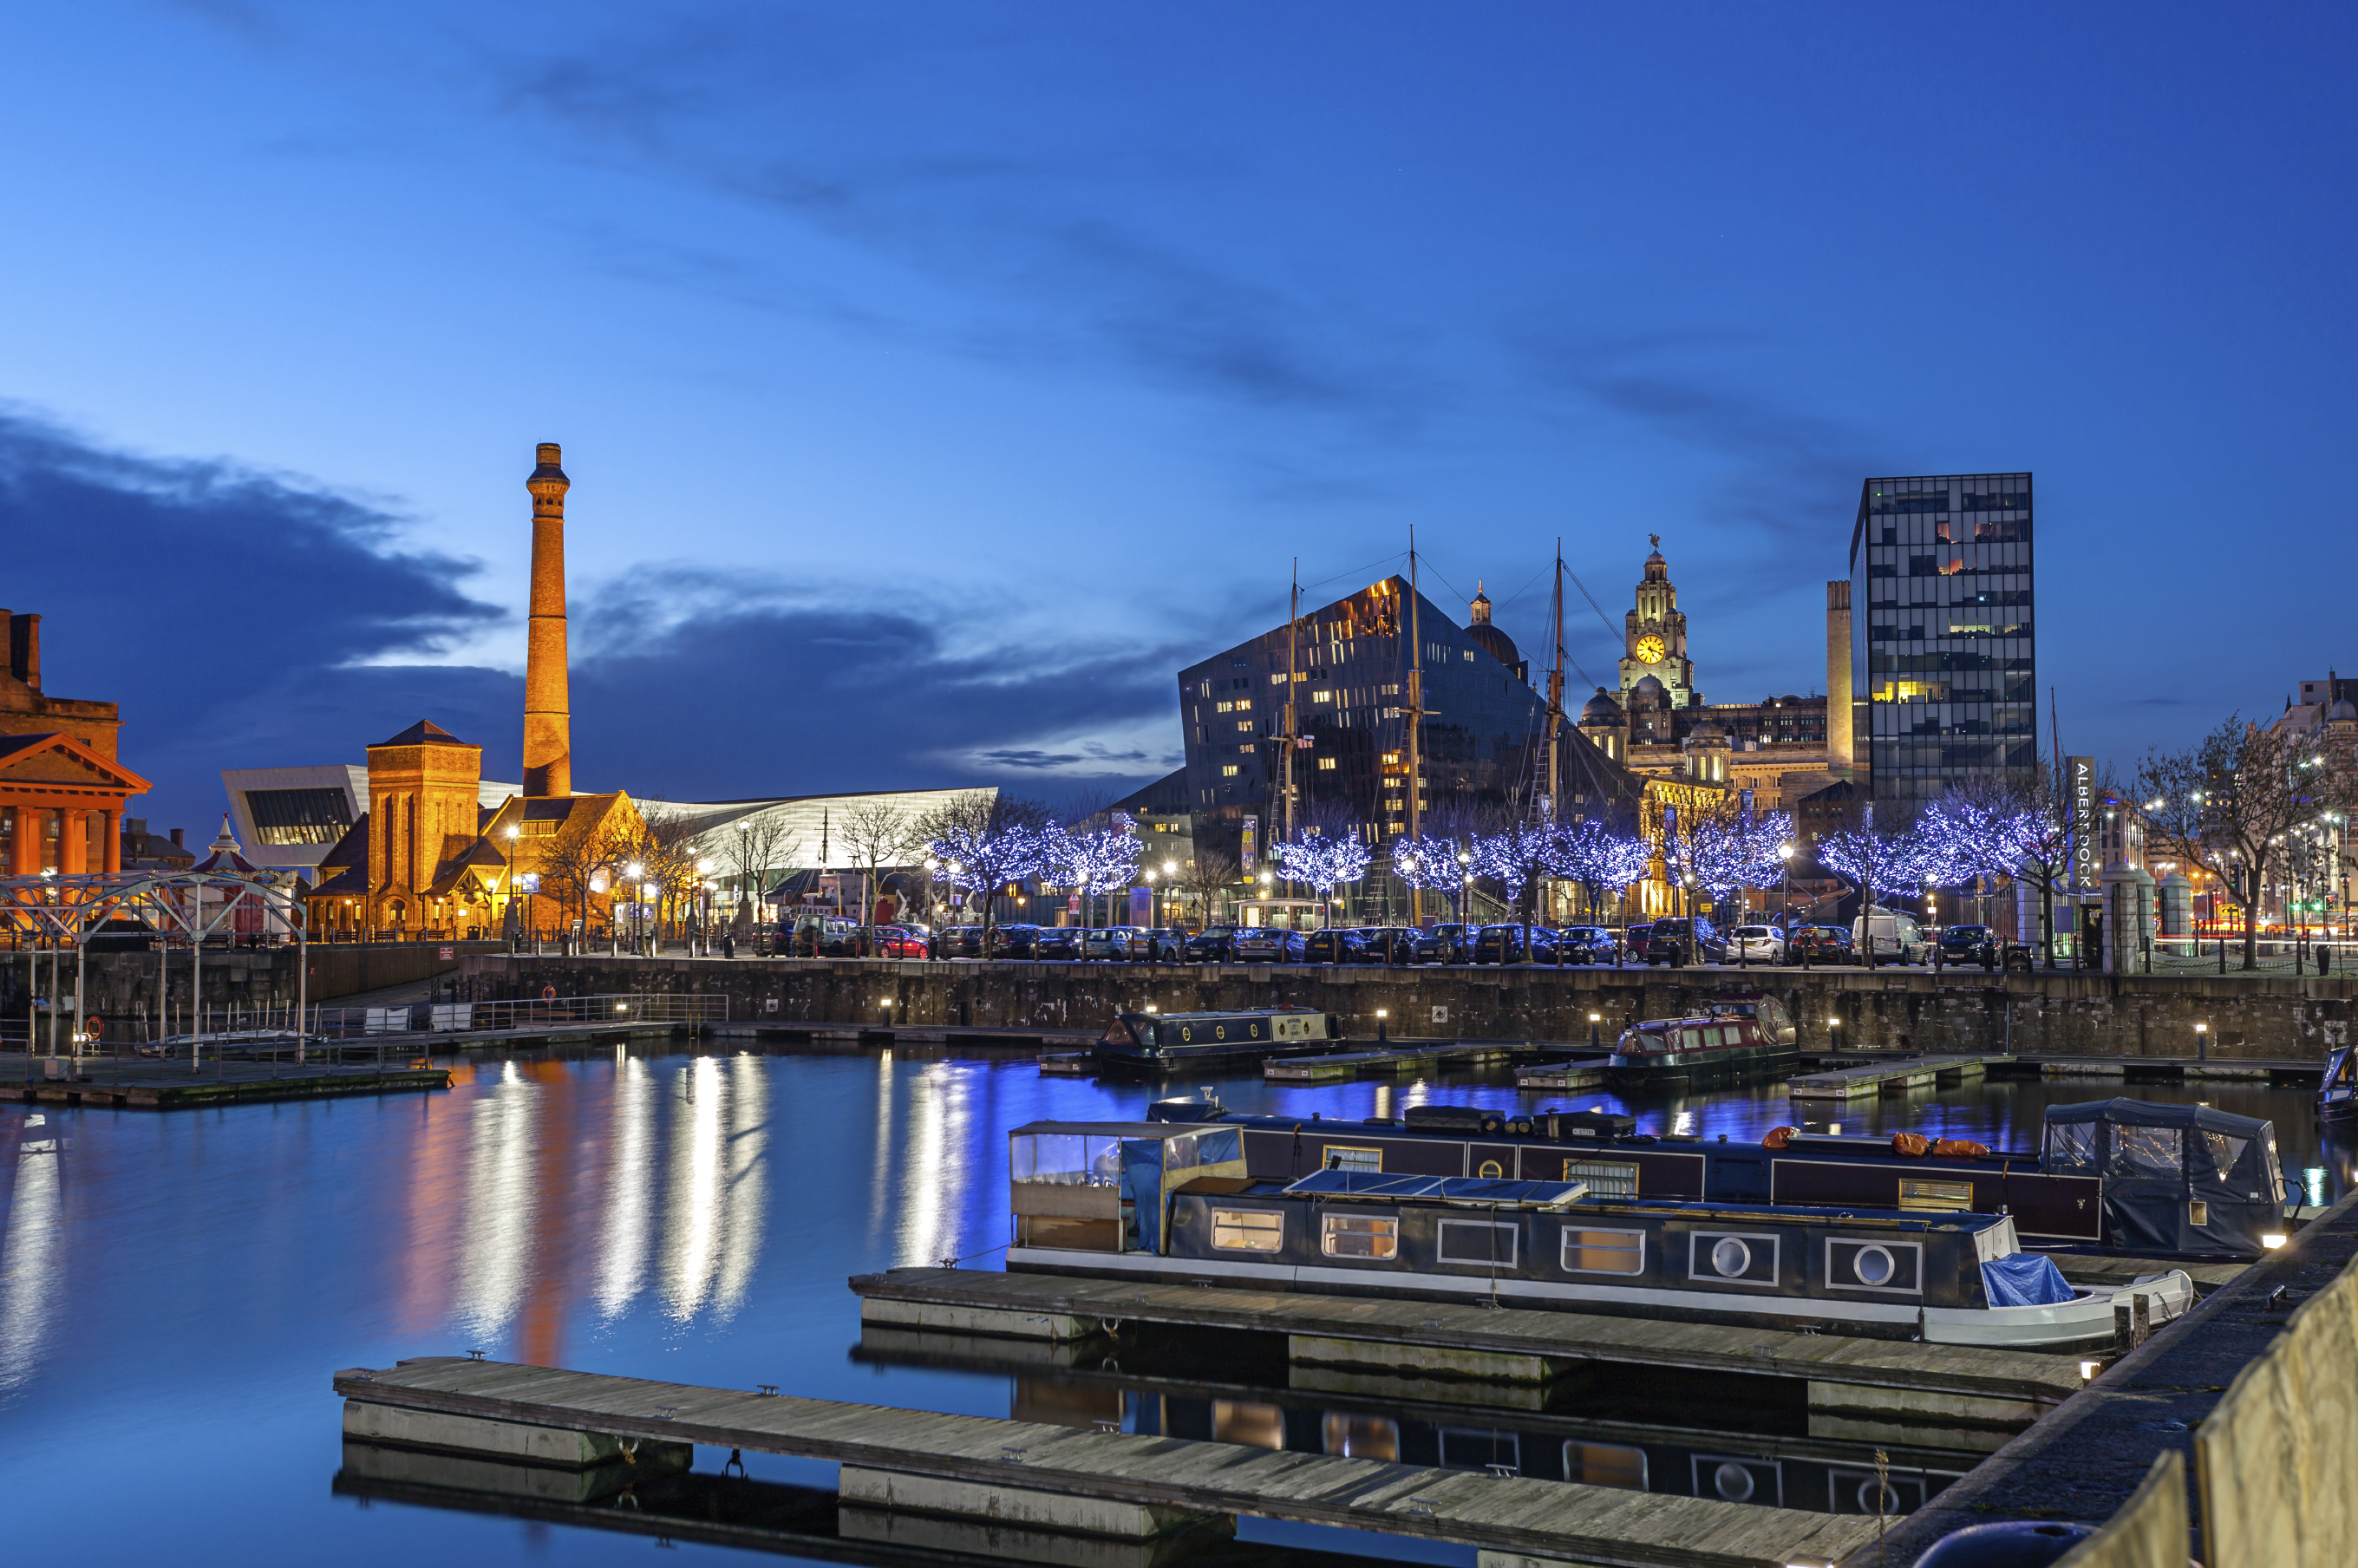 Liverpool skyline at the waterfront and famous landmark like liverpool museum, salt house and albert dock